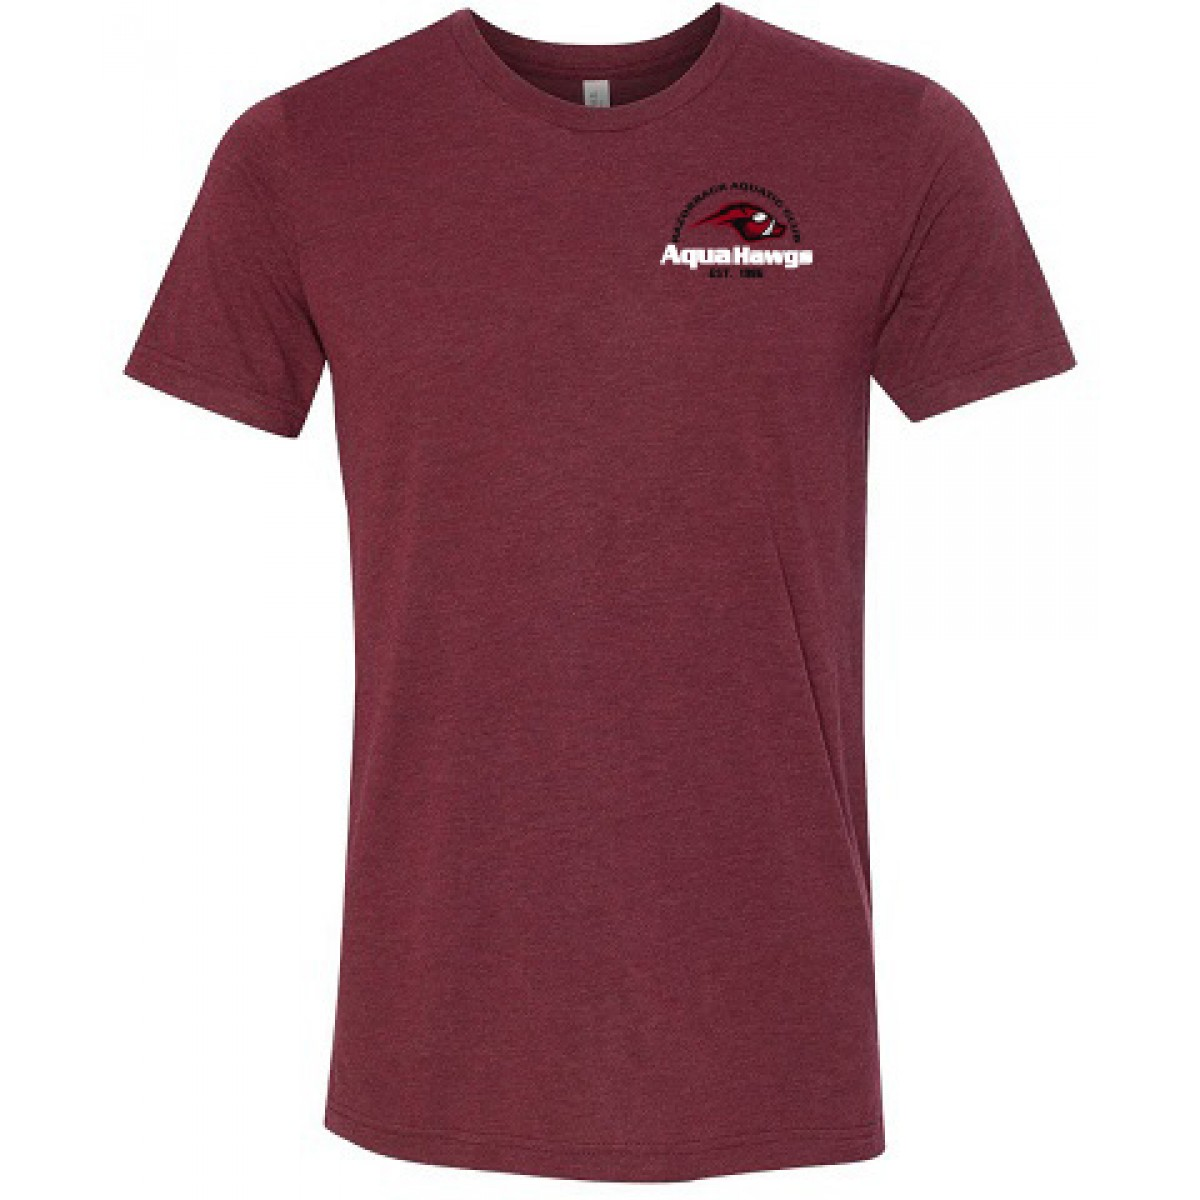 Bella+Canvas Unisex Short Sleeve Jersey T-Shirt-Cardinal Red-YS